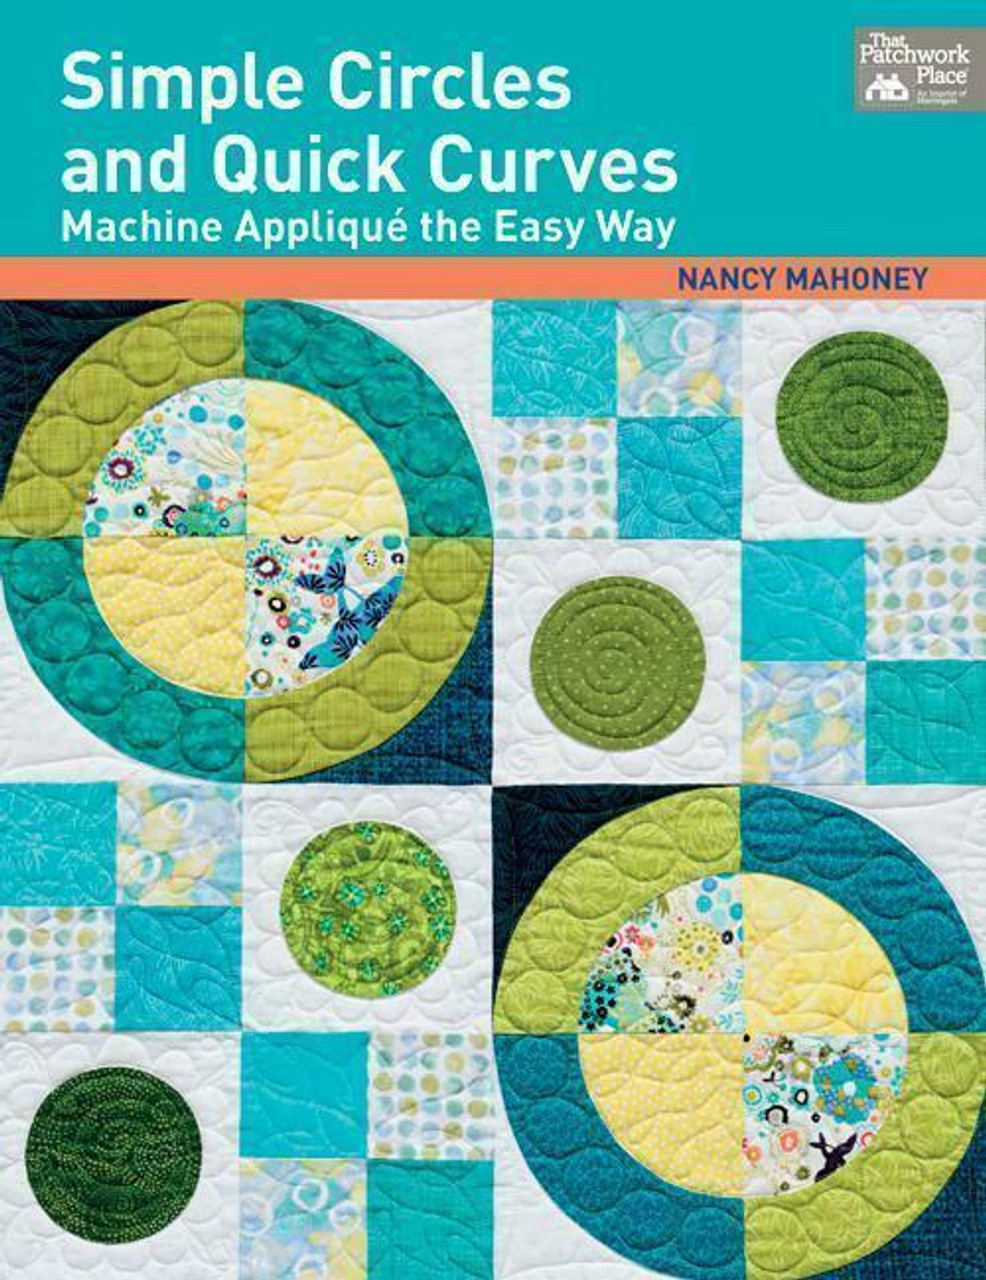 Simple Circles and Quick Curves